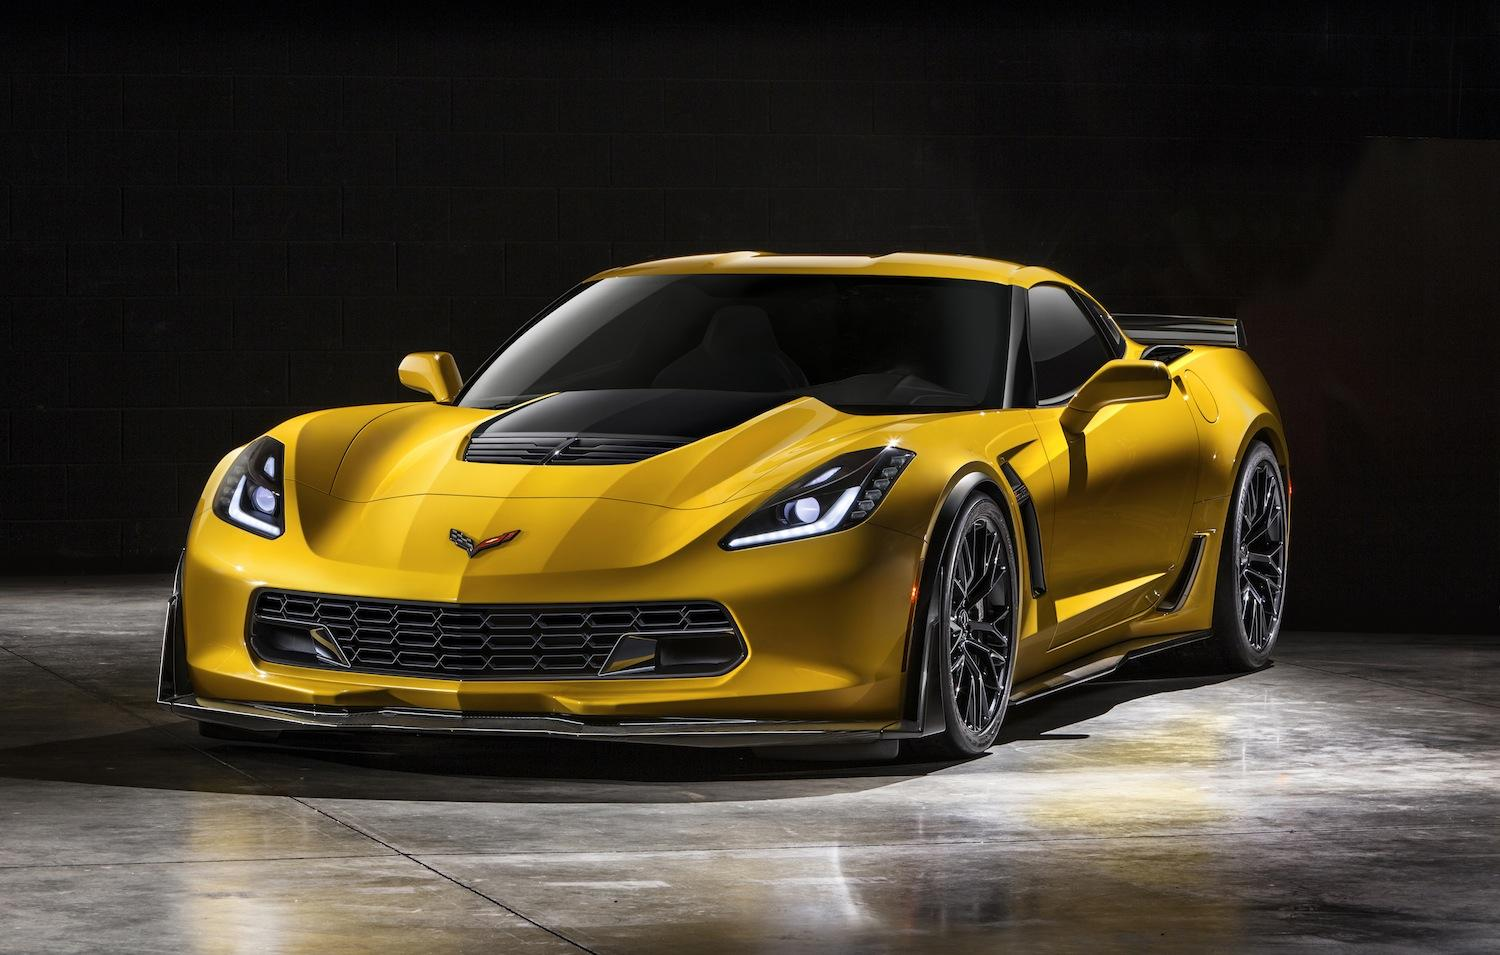 New Chevrolet Corvette model small cars bound for 2014 NY Auto Show 1500x955